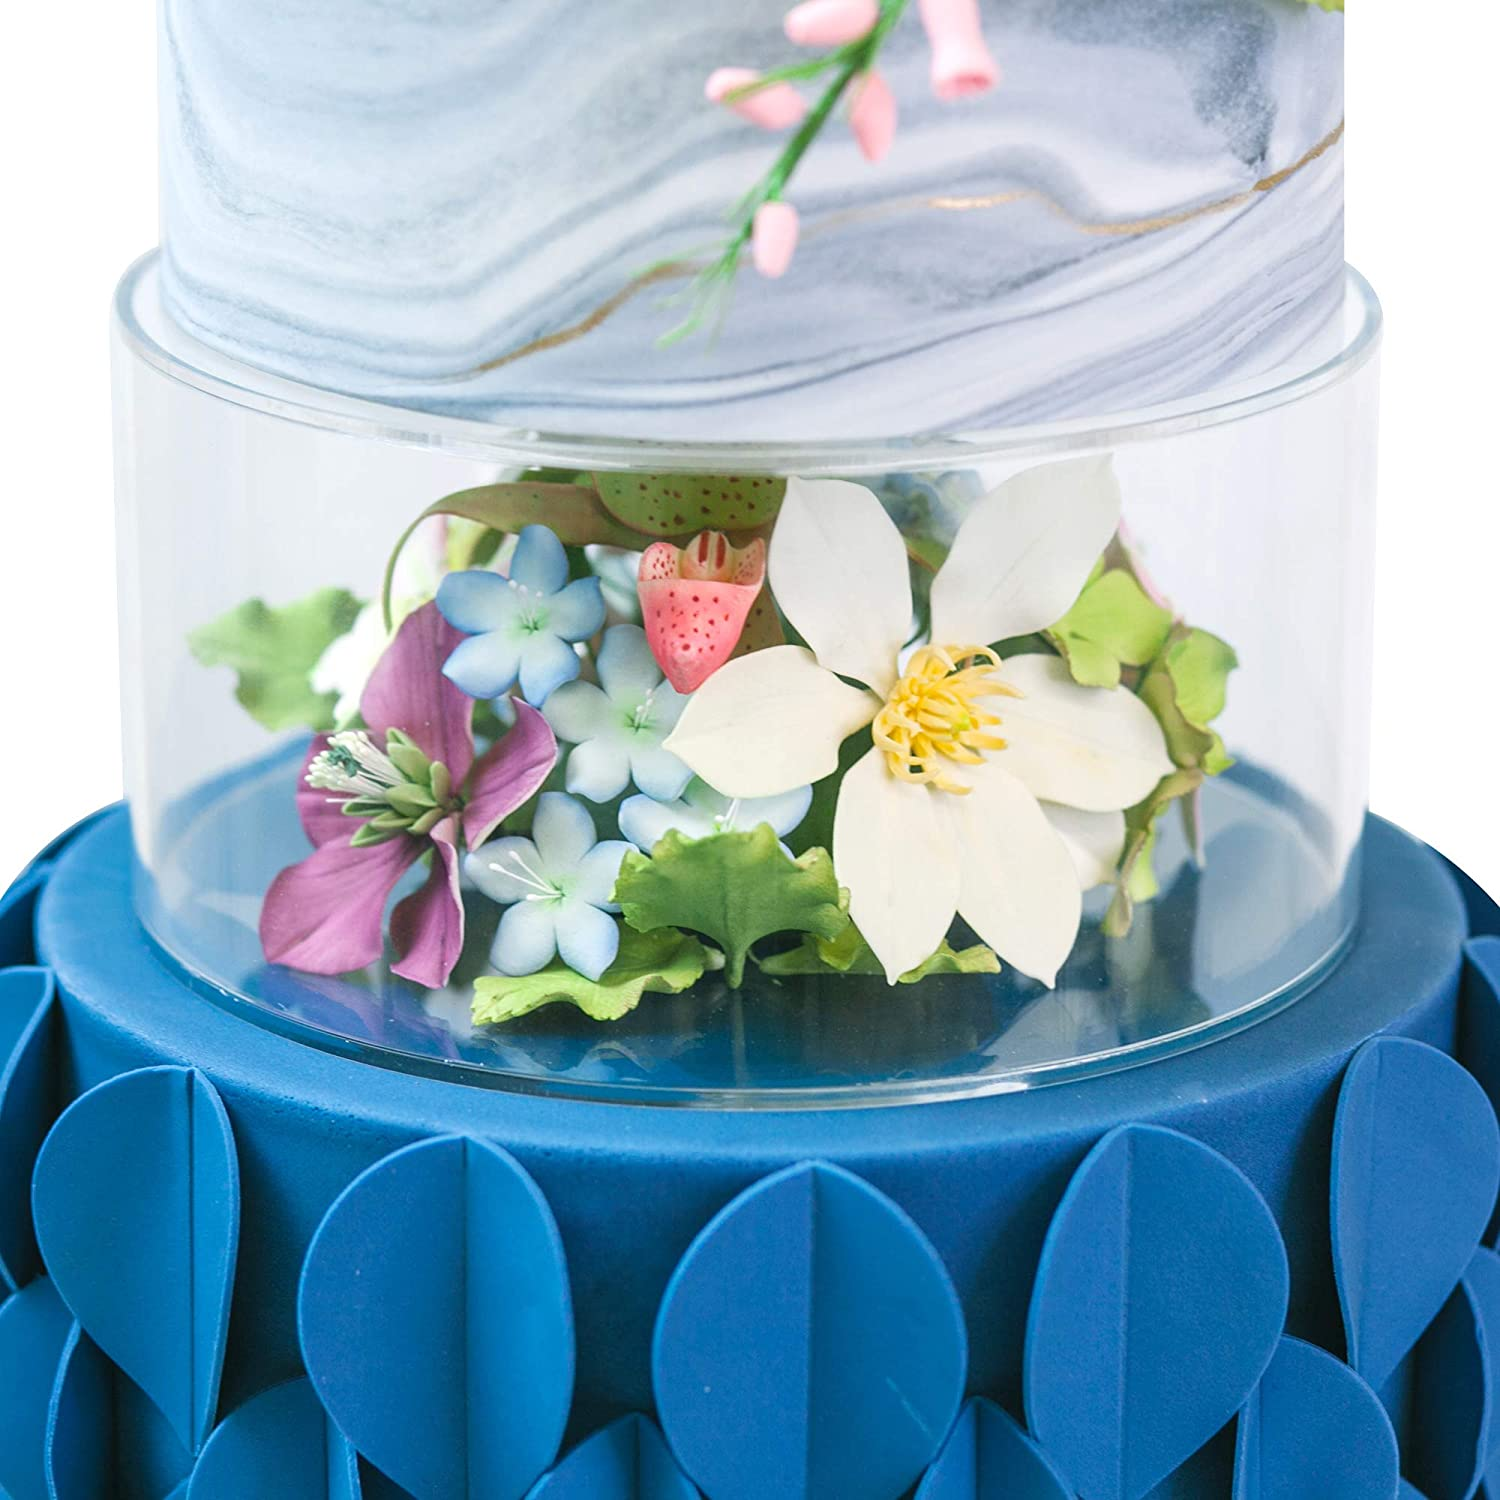 Lacupella Acrylic Fillable Cake Pillar Stand, Raiser and Enhancer Display - 10 in diameter - Decoration With Flowers, LED, Donuts, Sand, Water And More